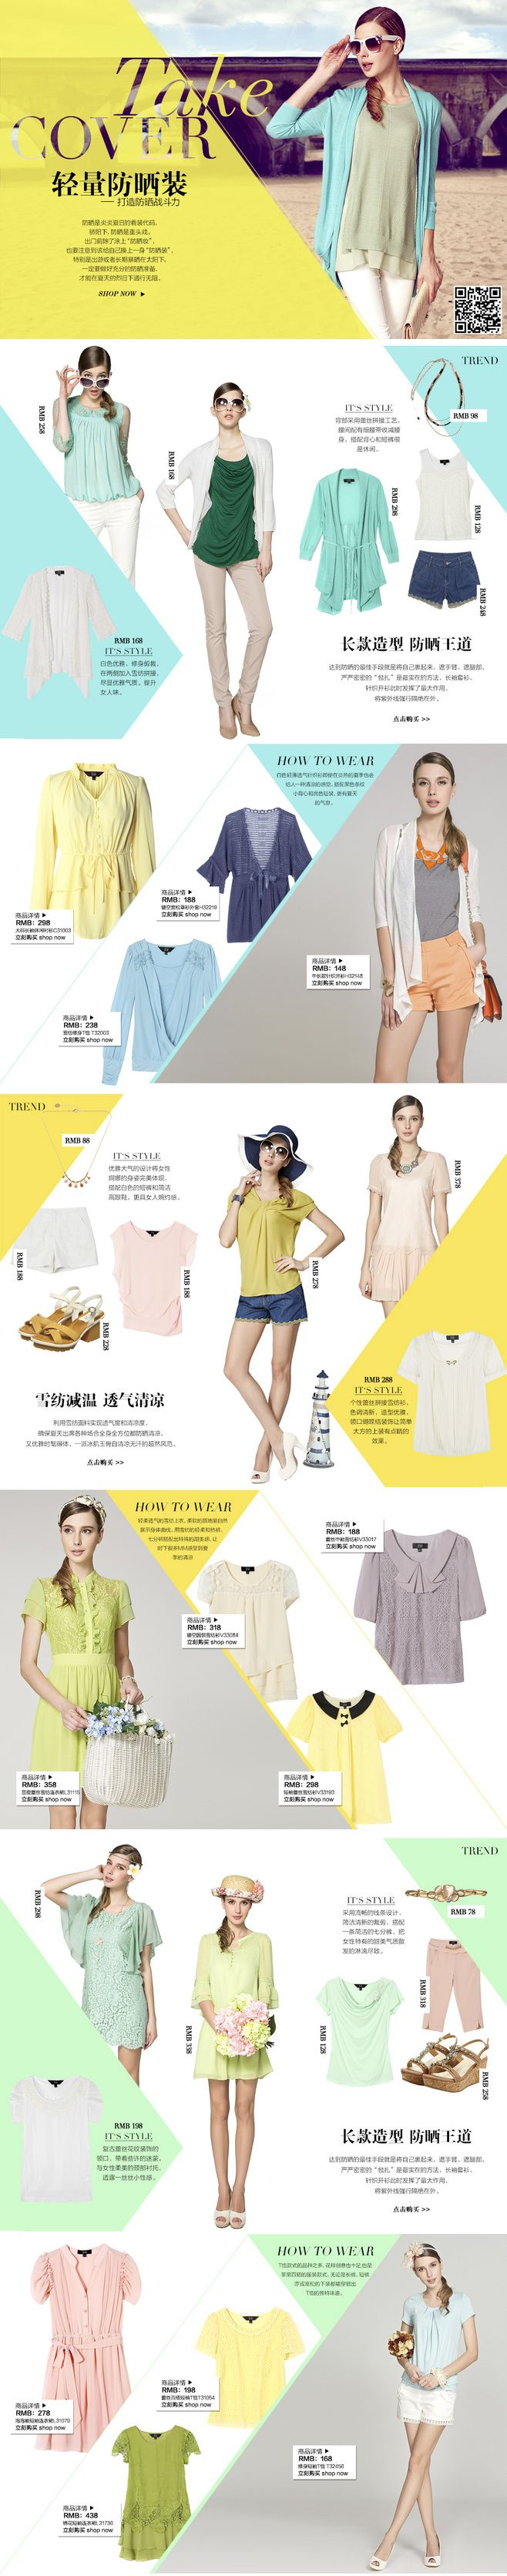 Fashion webshop - cut diagonally #webdesign | See more about graphic design, graphics and fashion.